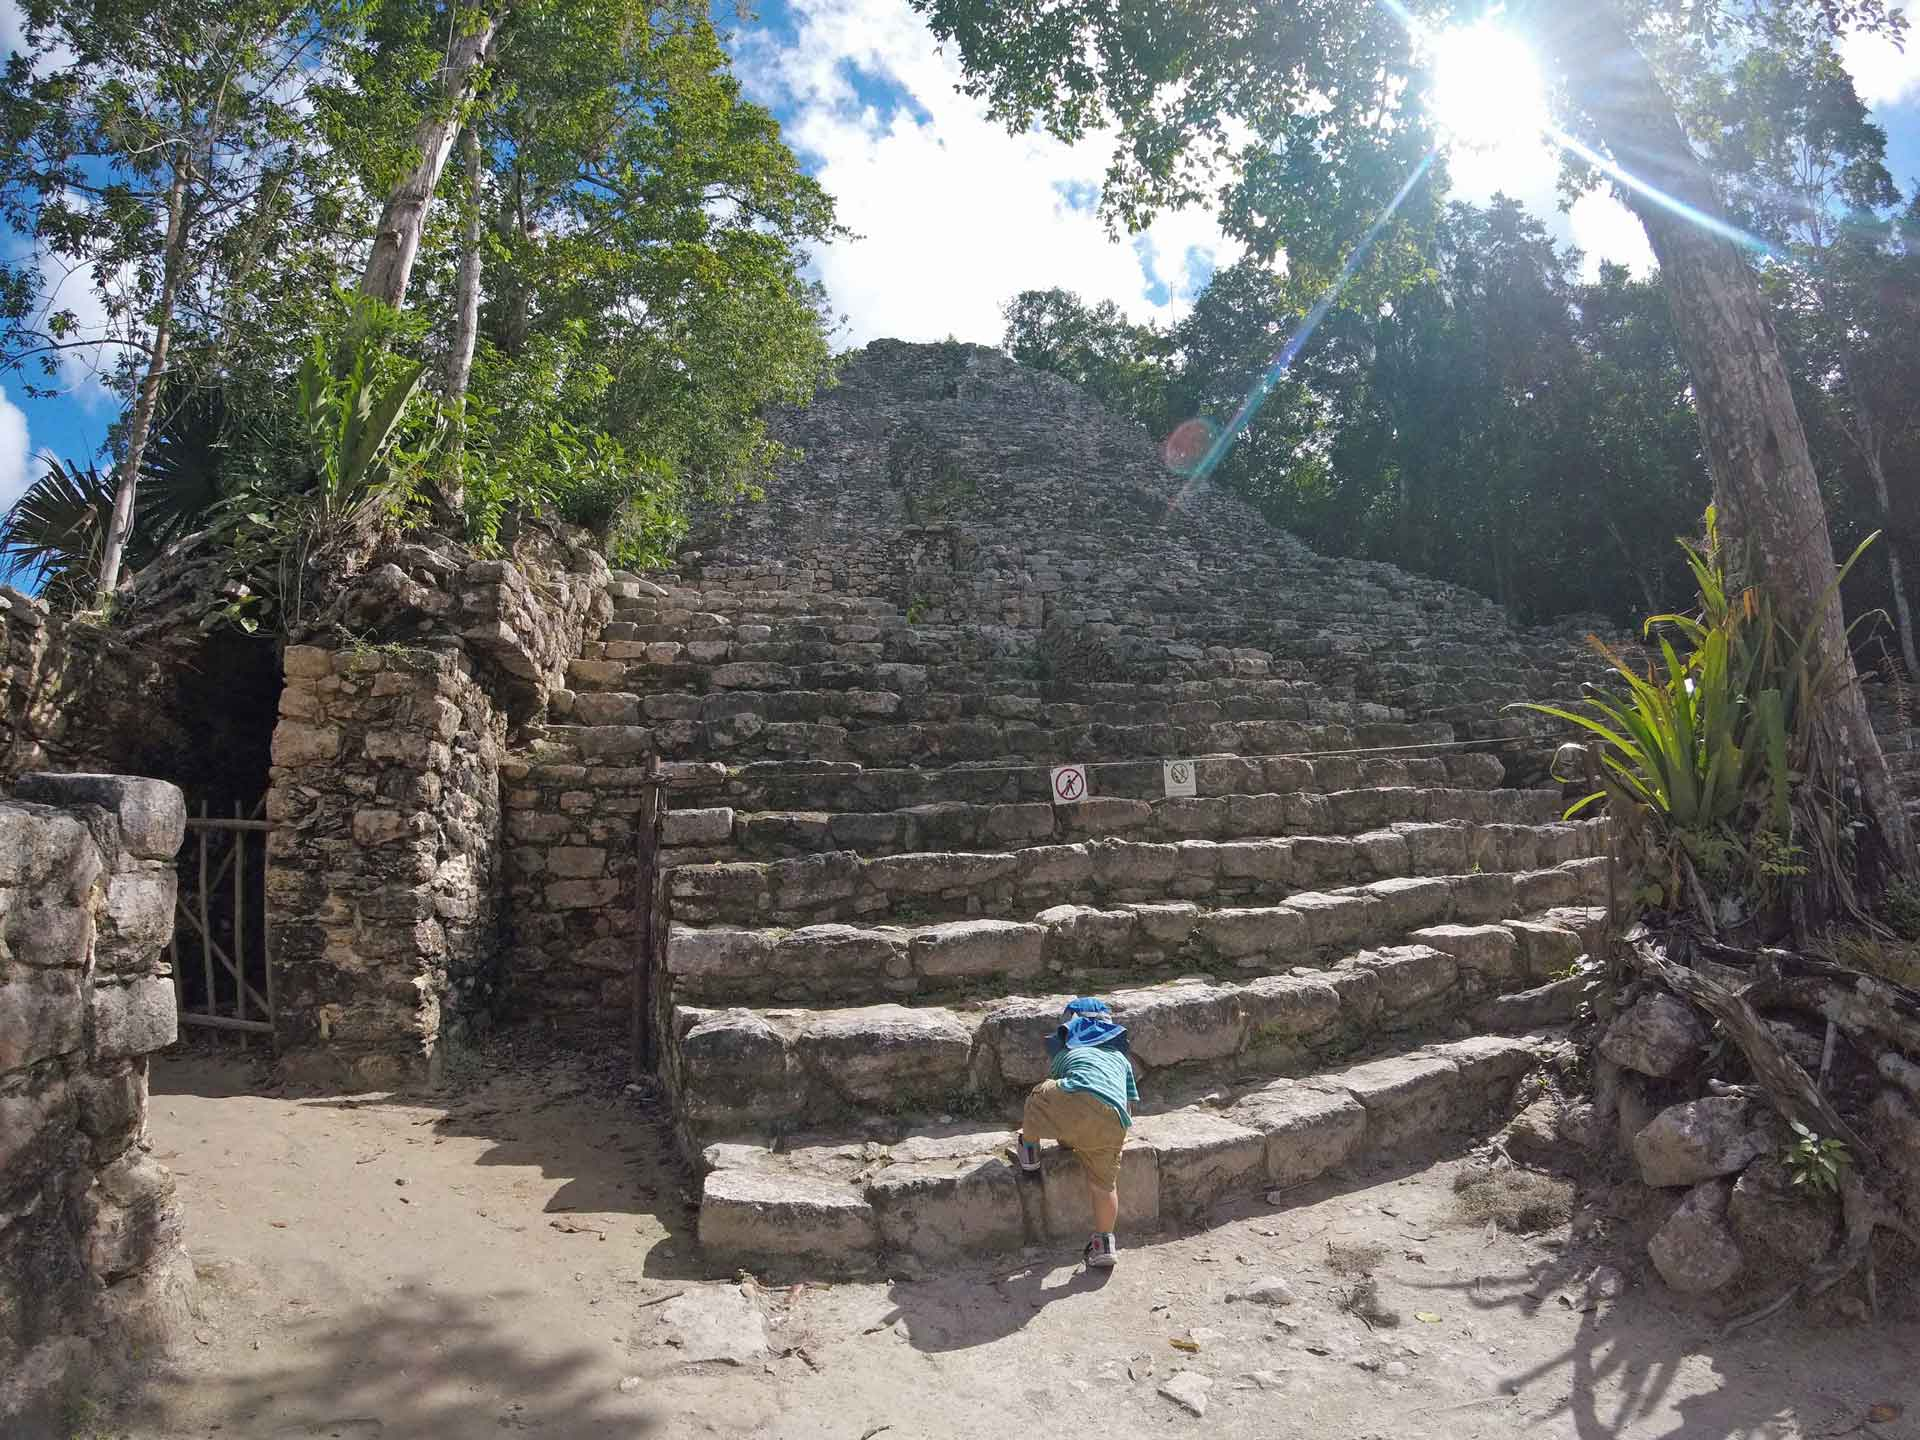 Visiting Ancient City of Coba in Mexico